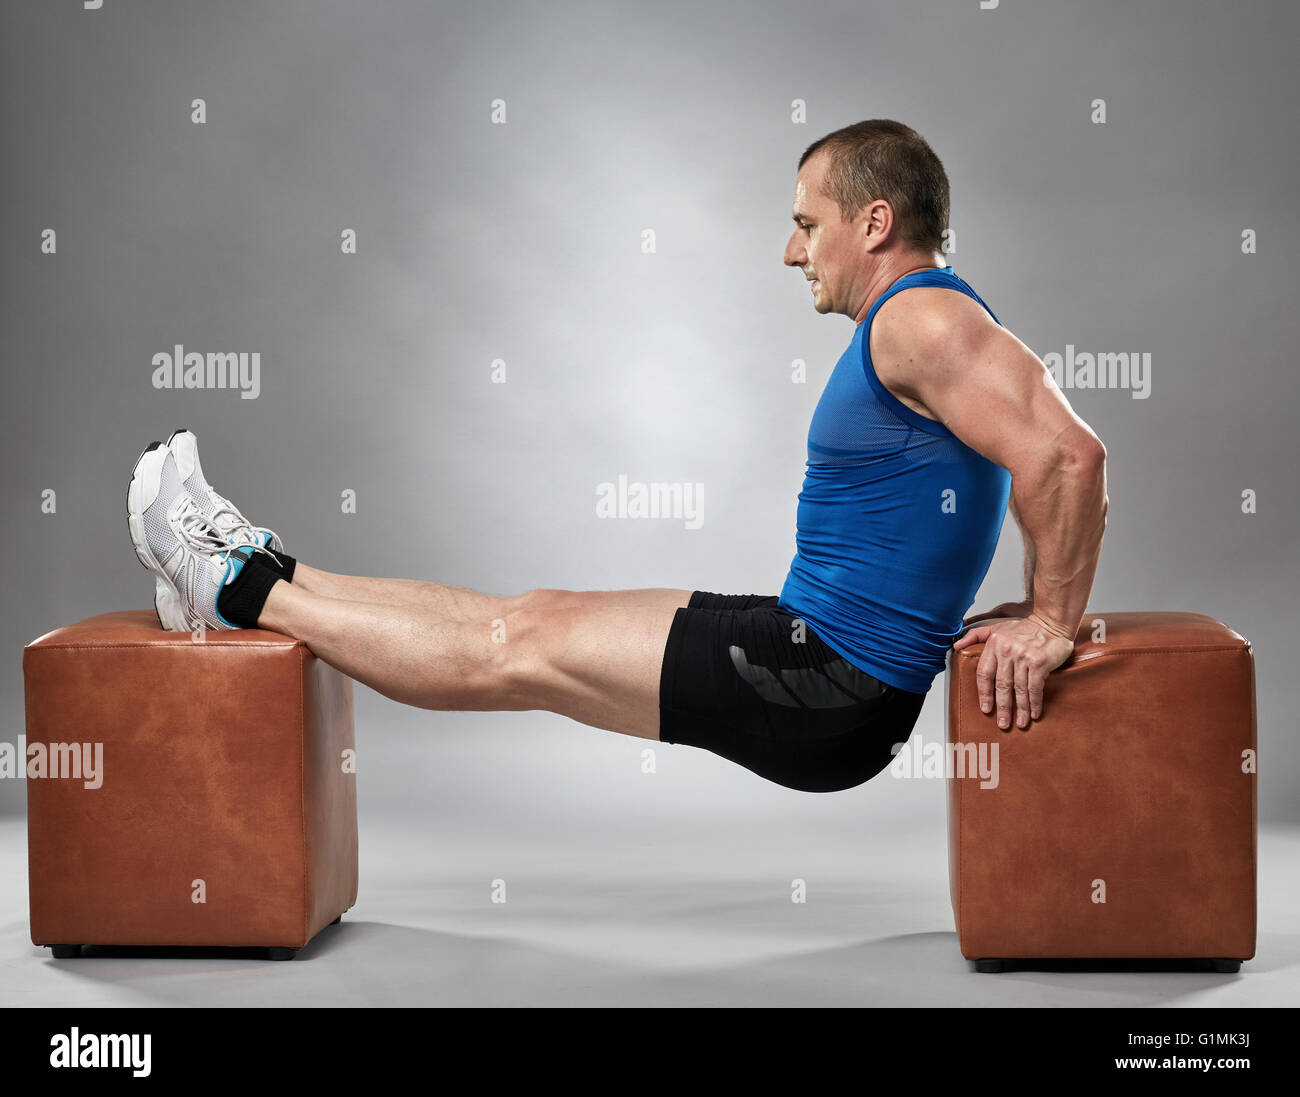 man doing pushup dips between two chairs in studio stock photo